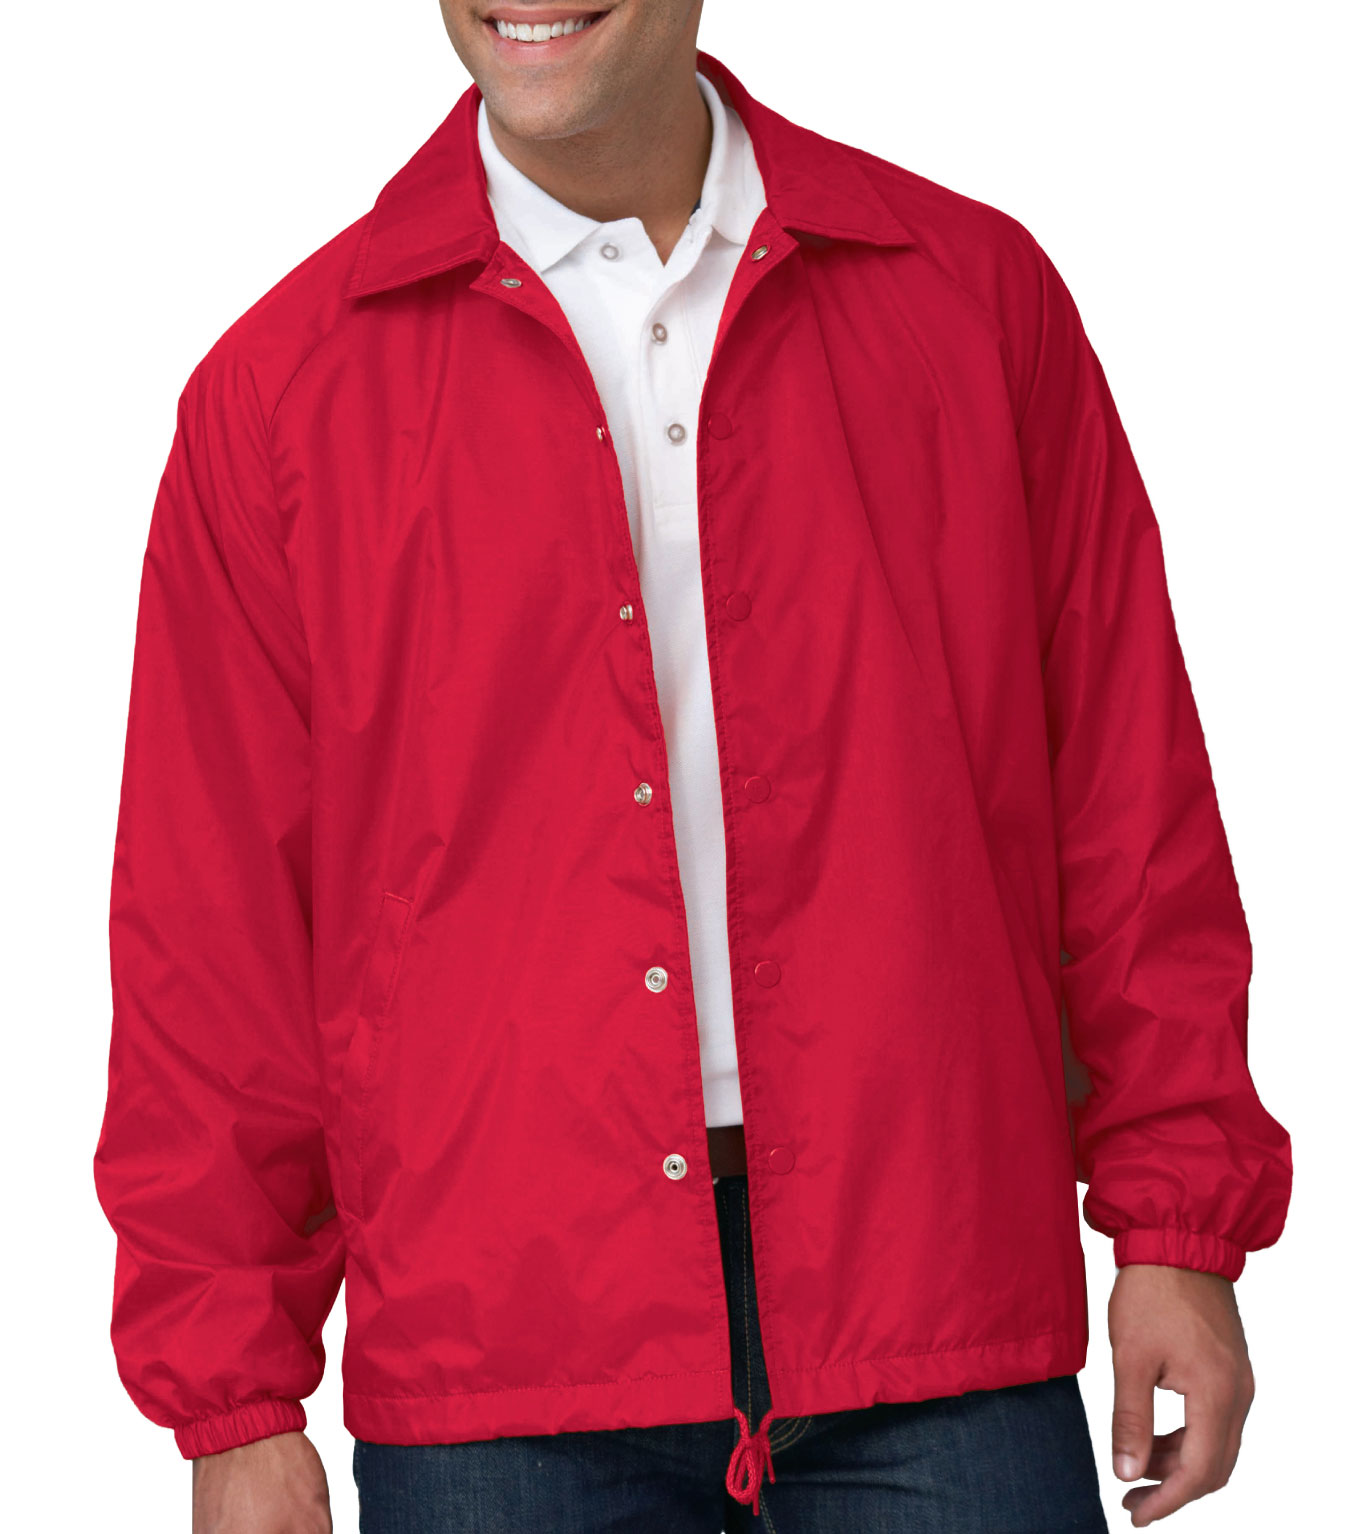 Dunbrooke Adult Coaches Windbreaker Jacket